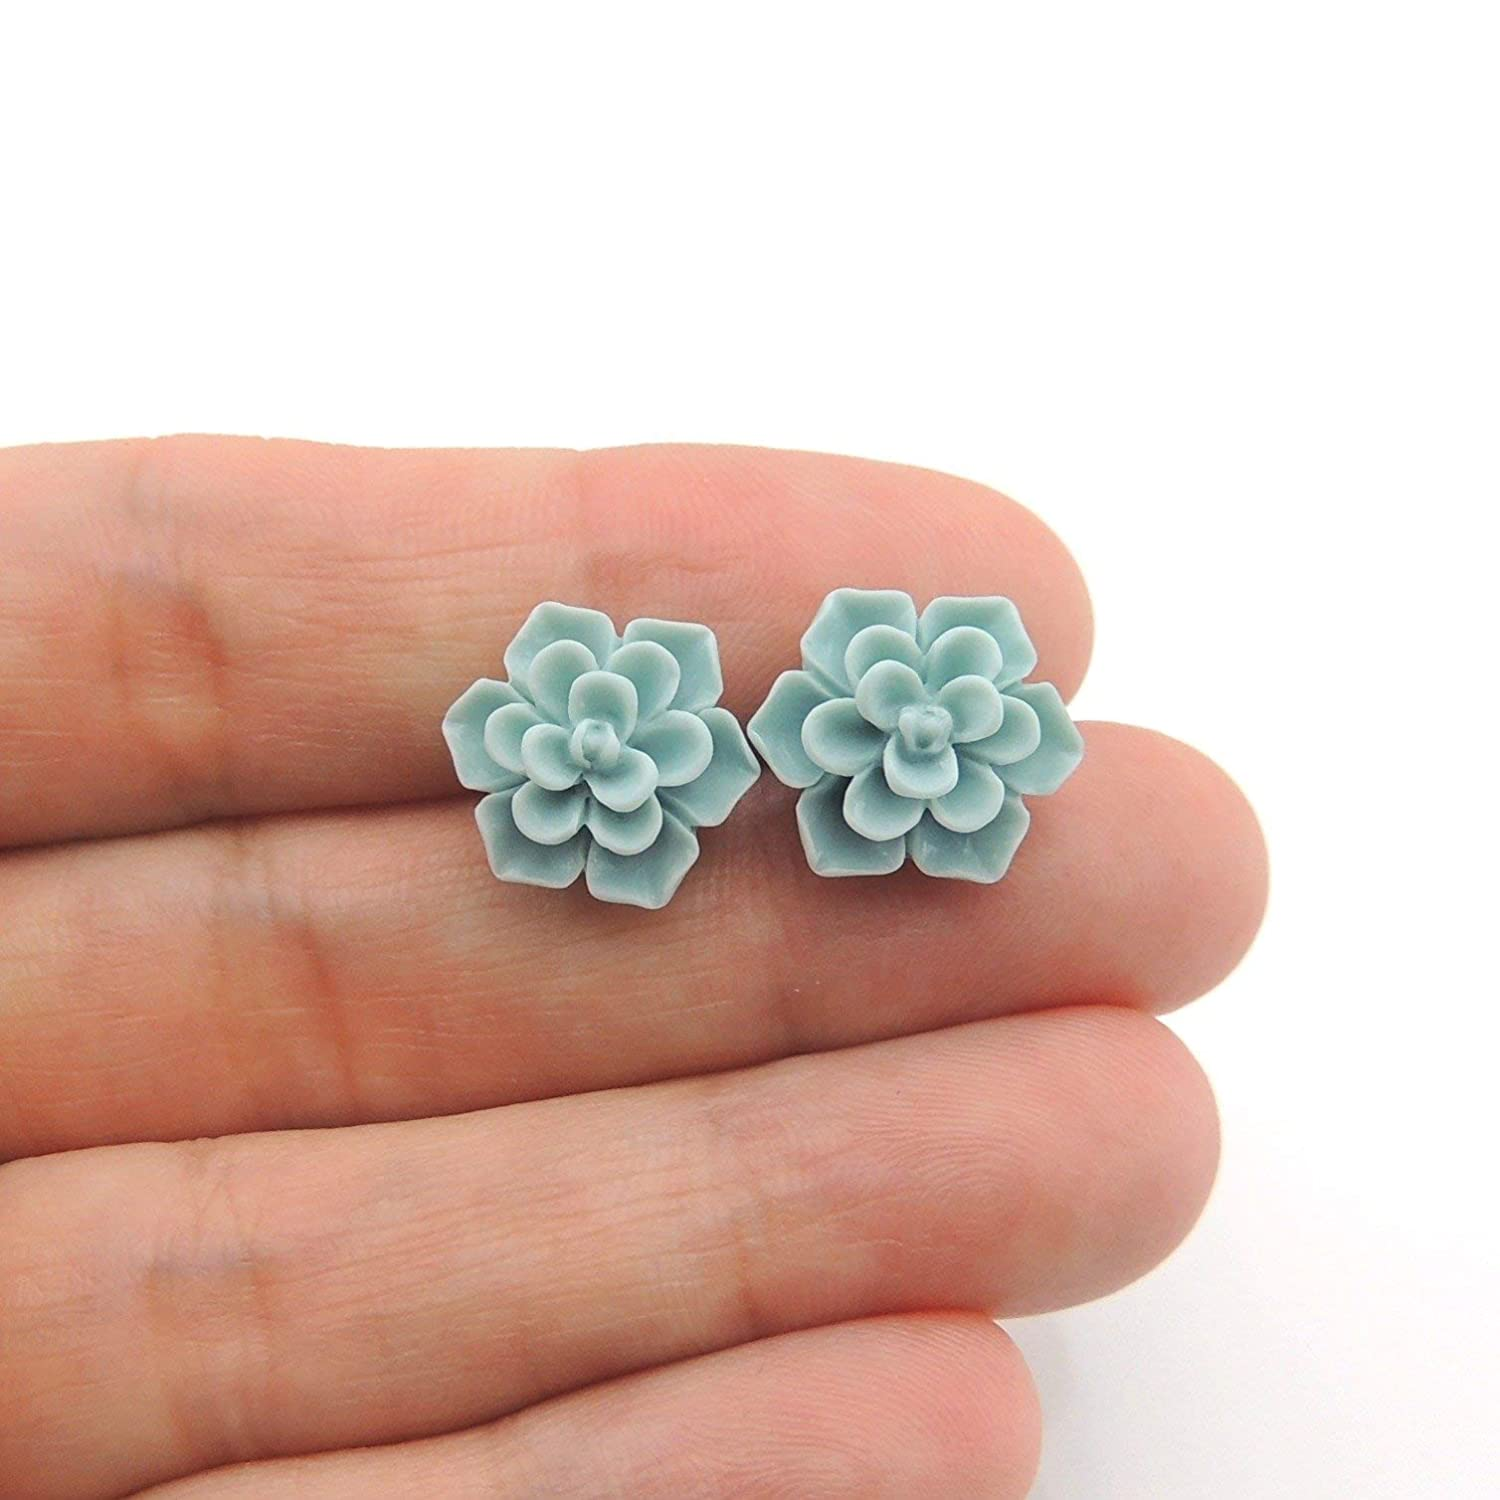 Succulent Earrings on Plastic Posts for Metal Sensitive Ears, 13mm Matte Aqua Blue